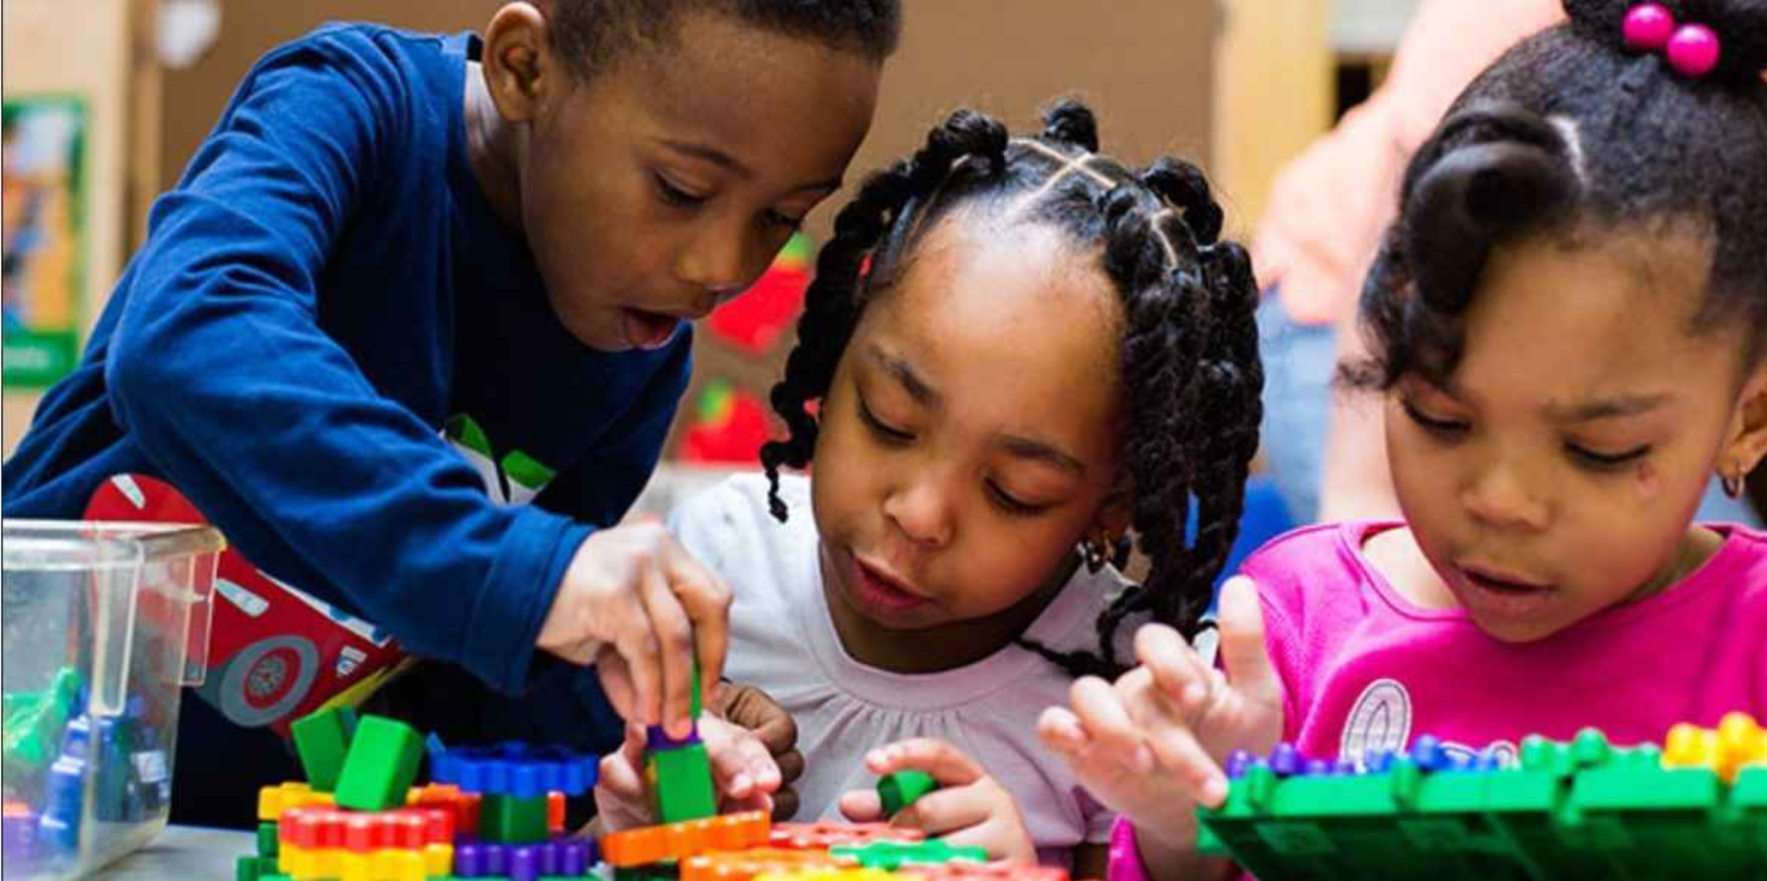 Your contribution will ensure Baltimore's under-served students have access to STEM and arts education! image